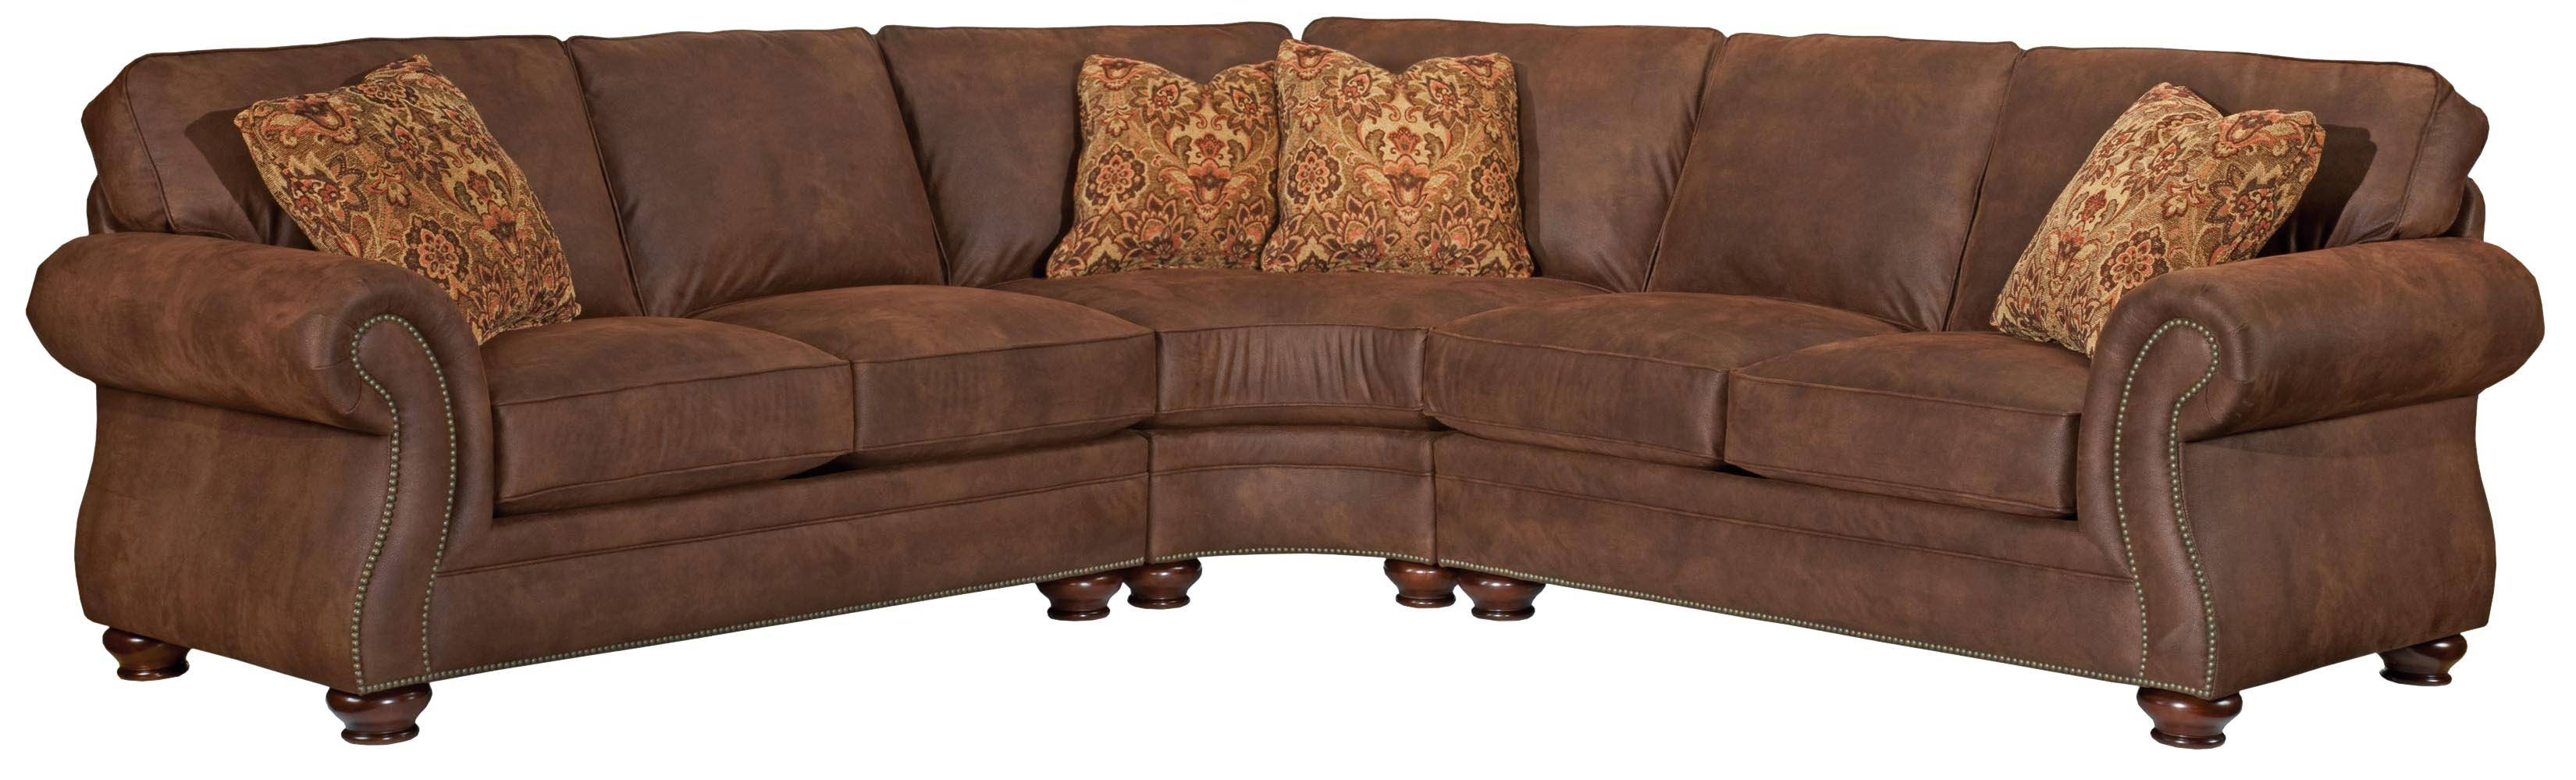 Broyhill Furniture Laramie 3 Piece Wedge Sectional Sofa - Ahfa regarding Broyhill Sofas (Image 4 of 15)